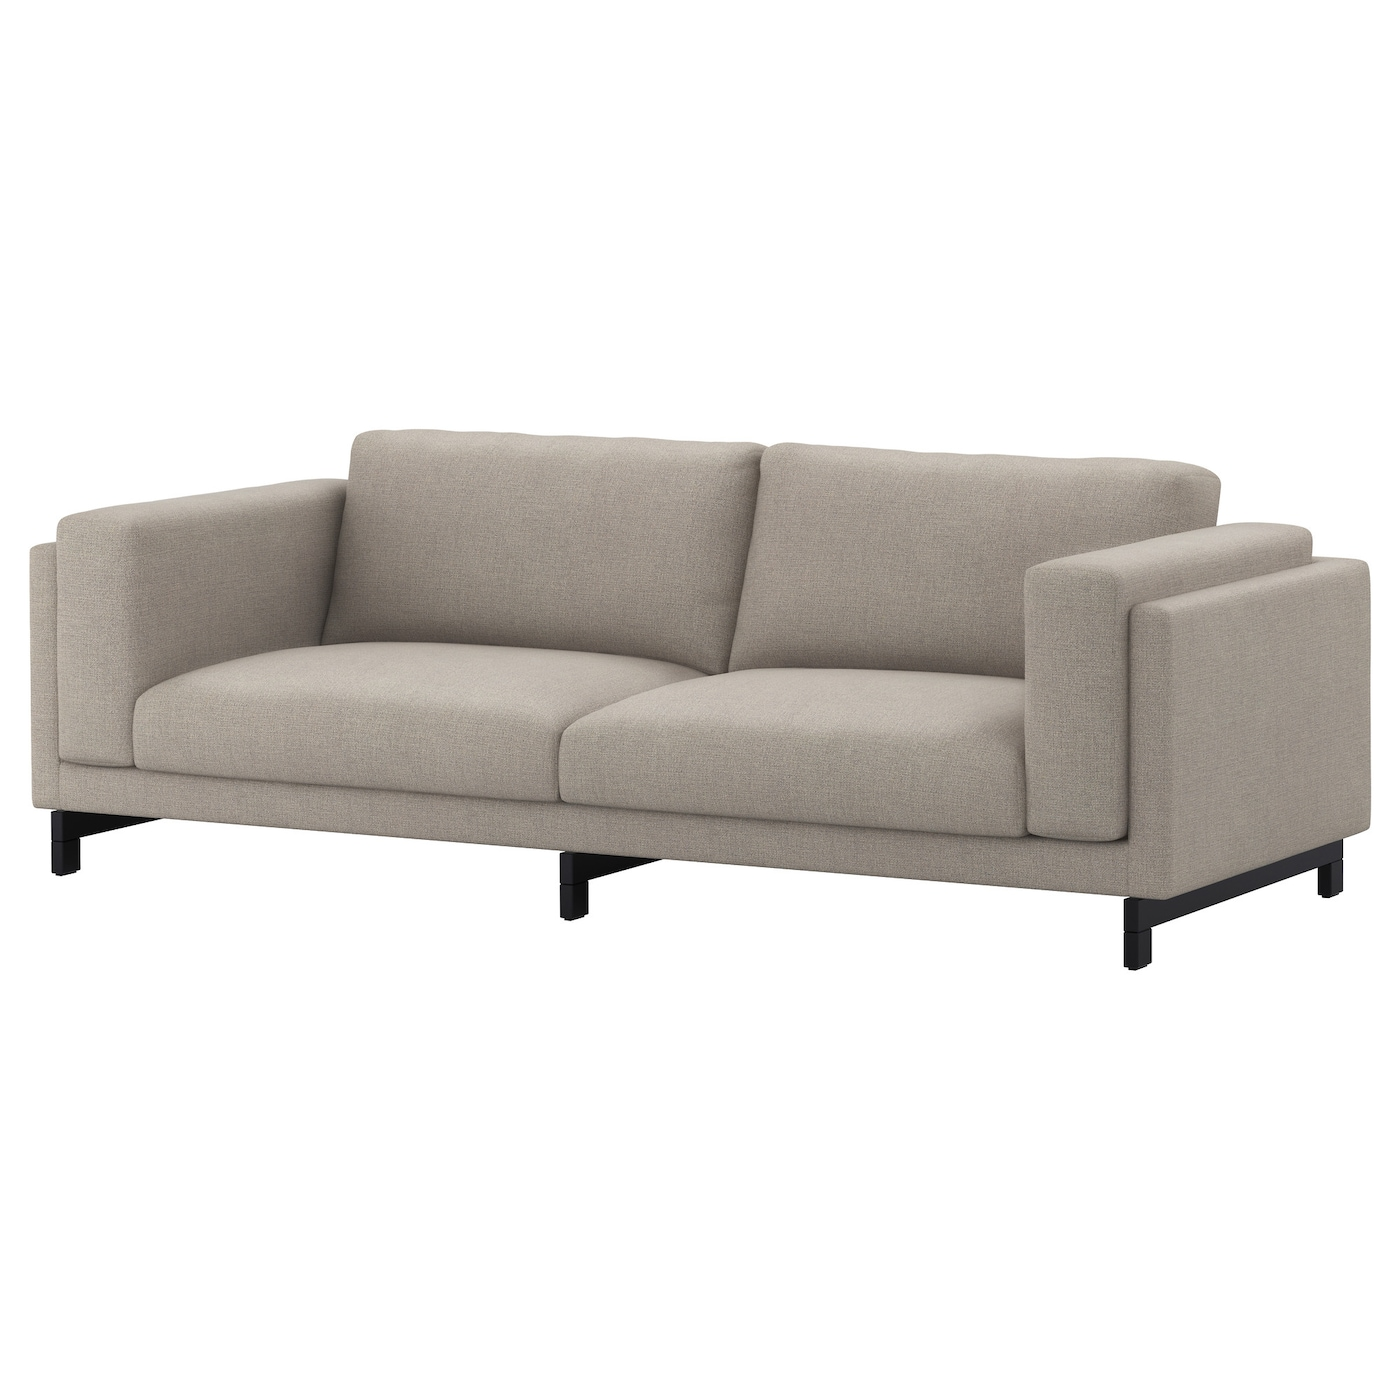 Ikea Nockeby Legs For 3 Seat Sofa